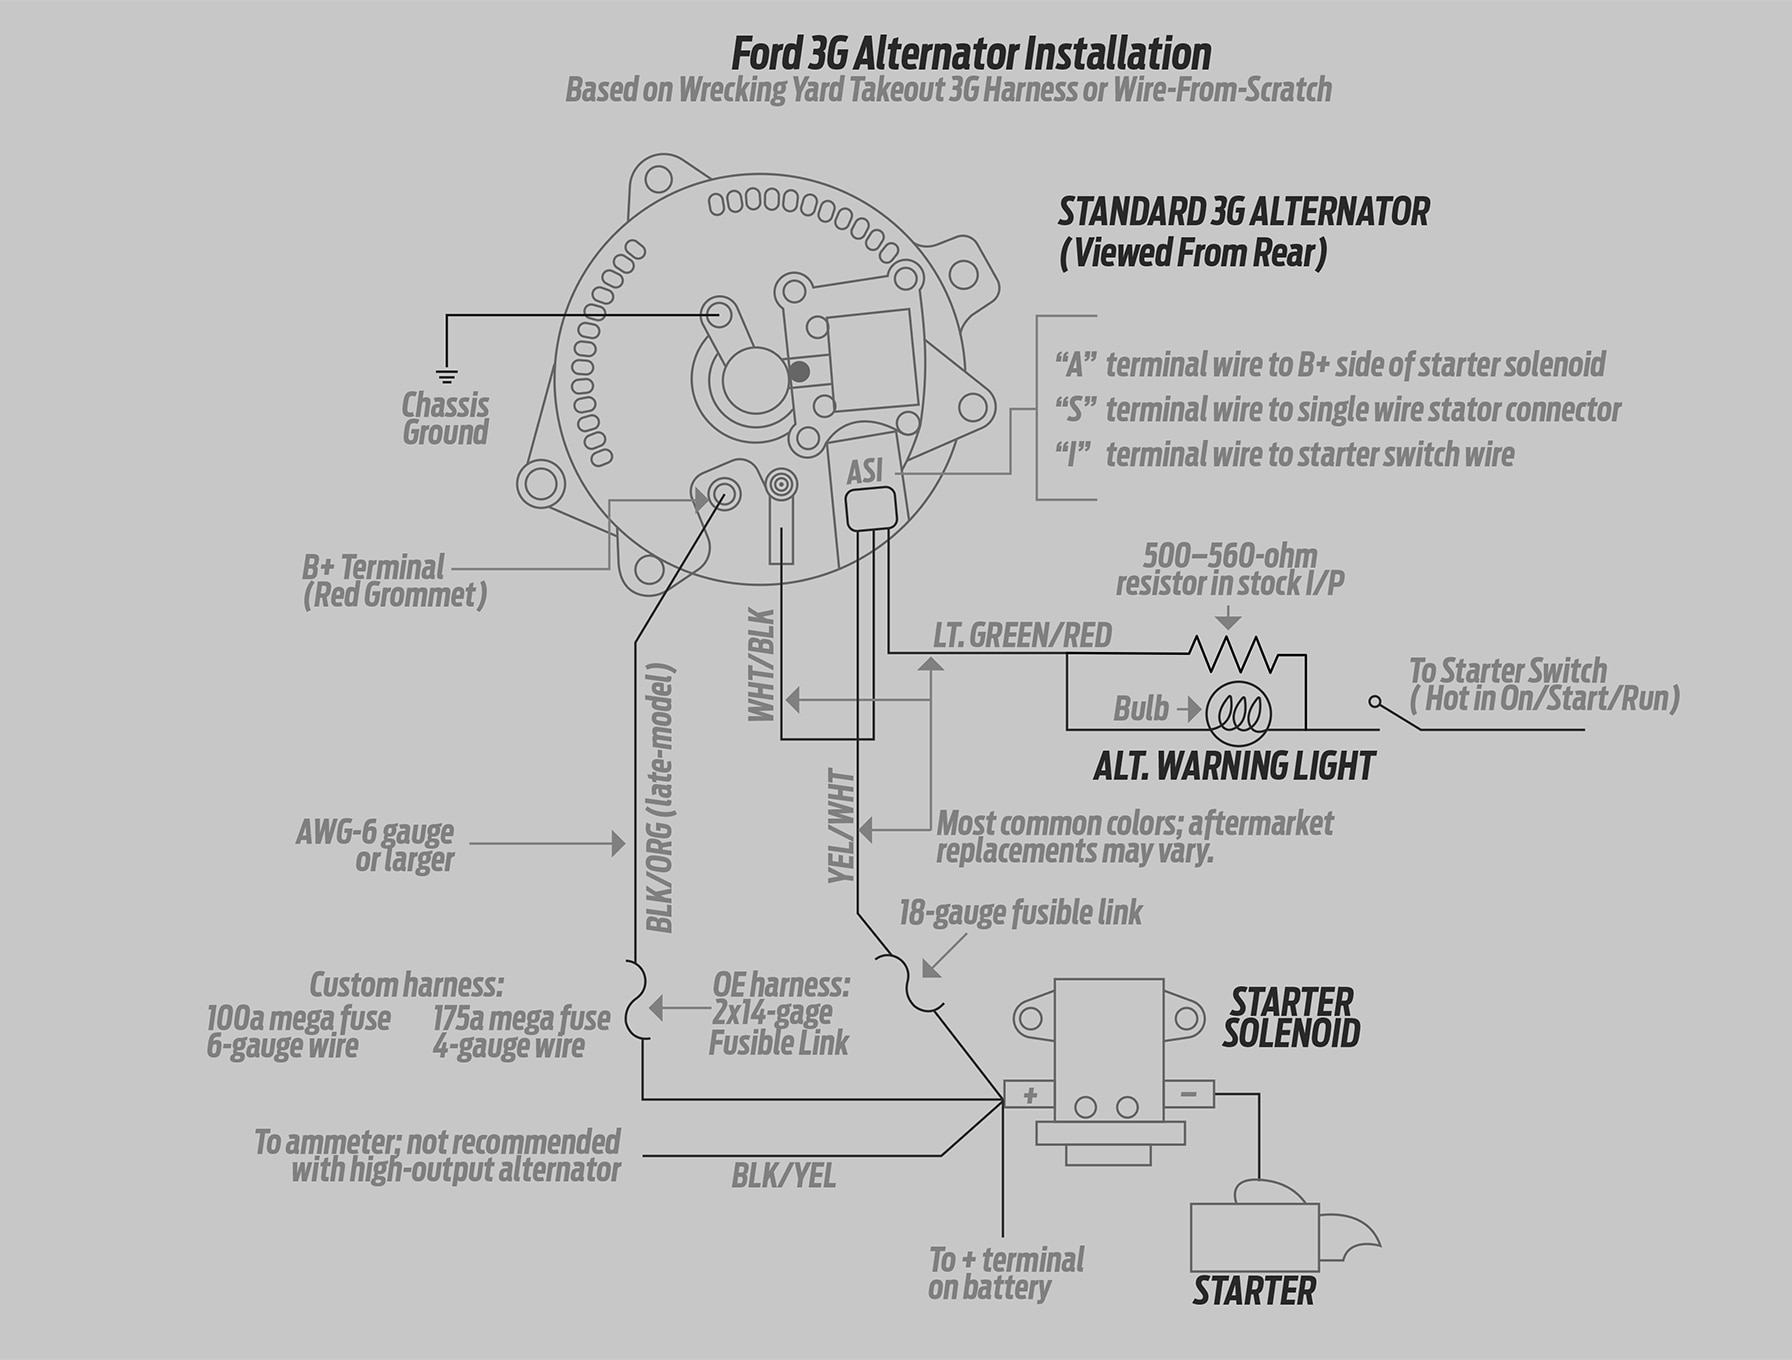 small resolution of ford 3g alternator wiring wiring diagram experthow to install a high output ford 3g alternator into